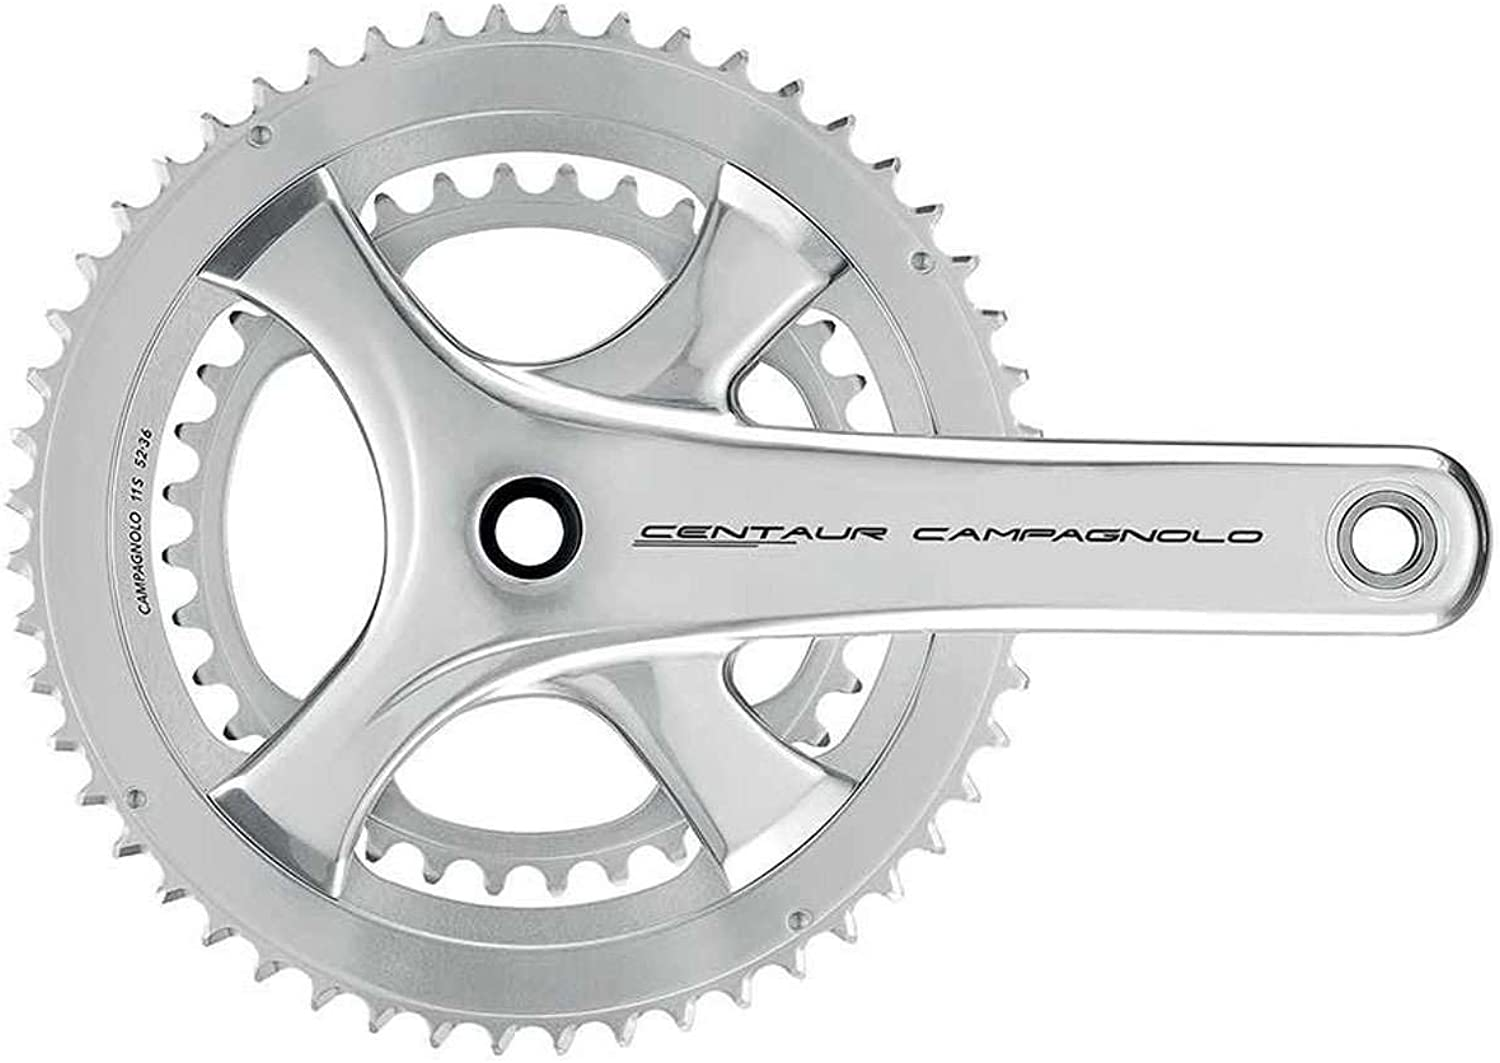 CAMPAGNOLO Centaur Ut 175 x 5034 Teeth 11 Speed Bike Cranksets, Silver